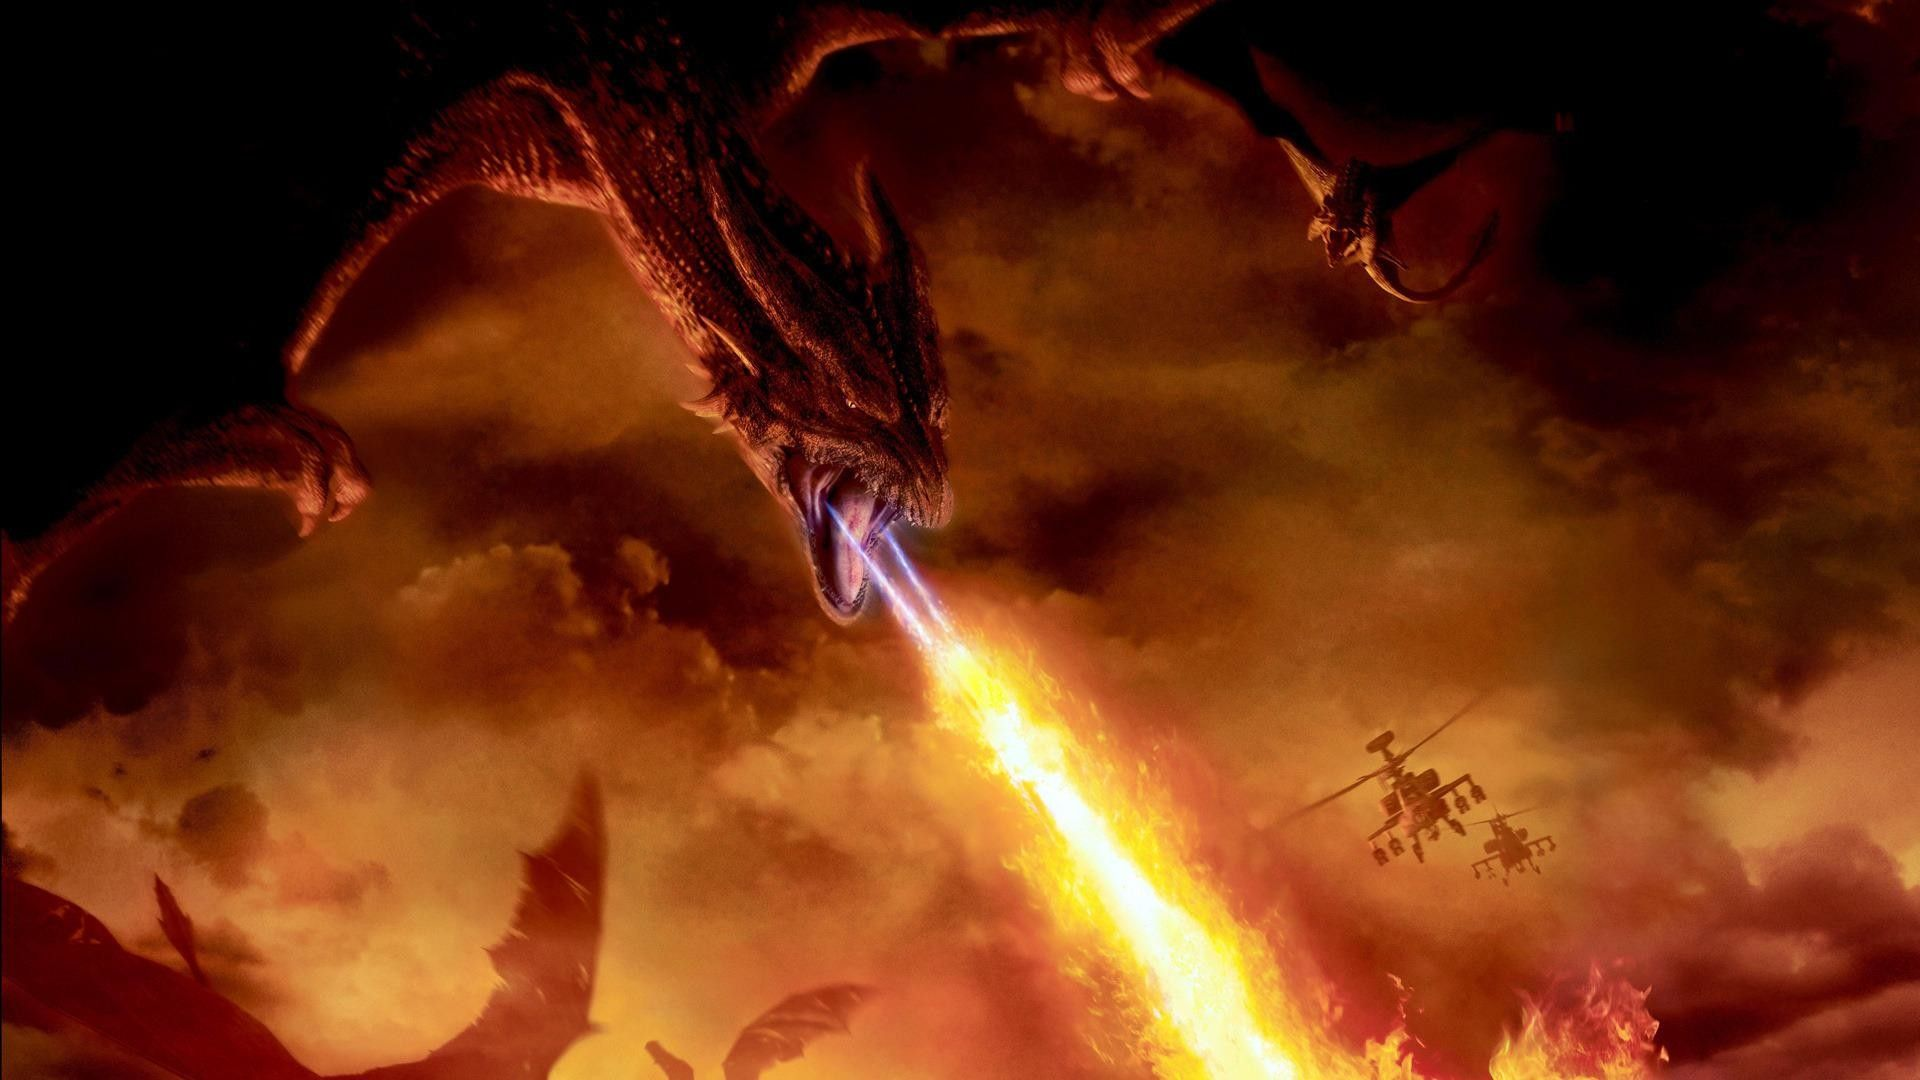 Fire Dragon Wallpapers - Top Free Fire Dragon Backgrounds